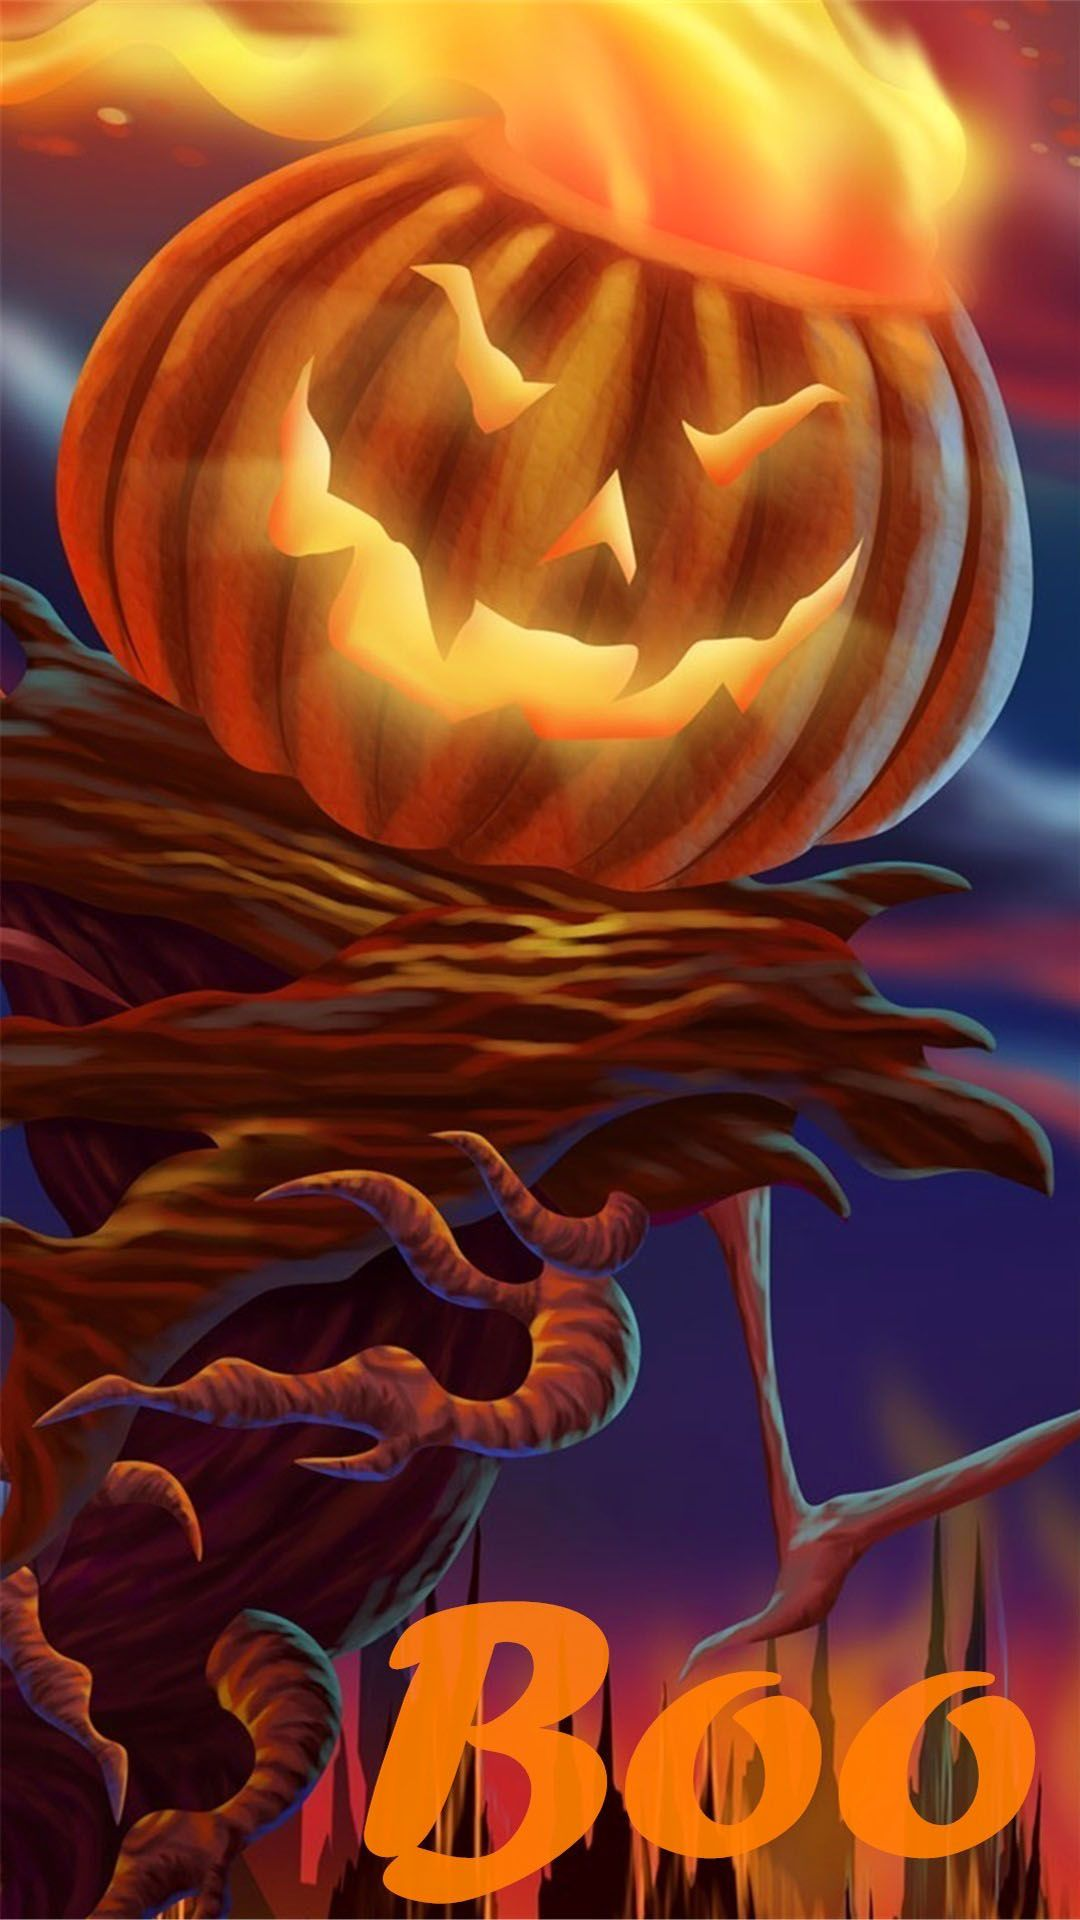 HD Wallpaper 96 in 2019 Halloween wallpaper iphone